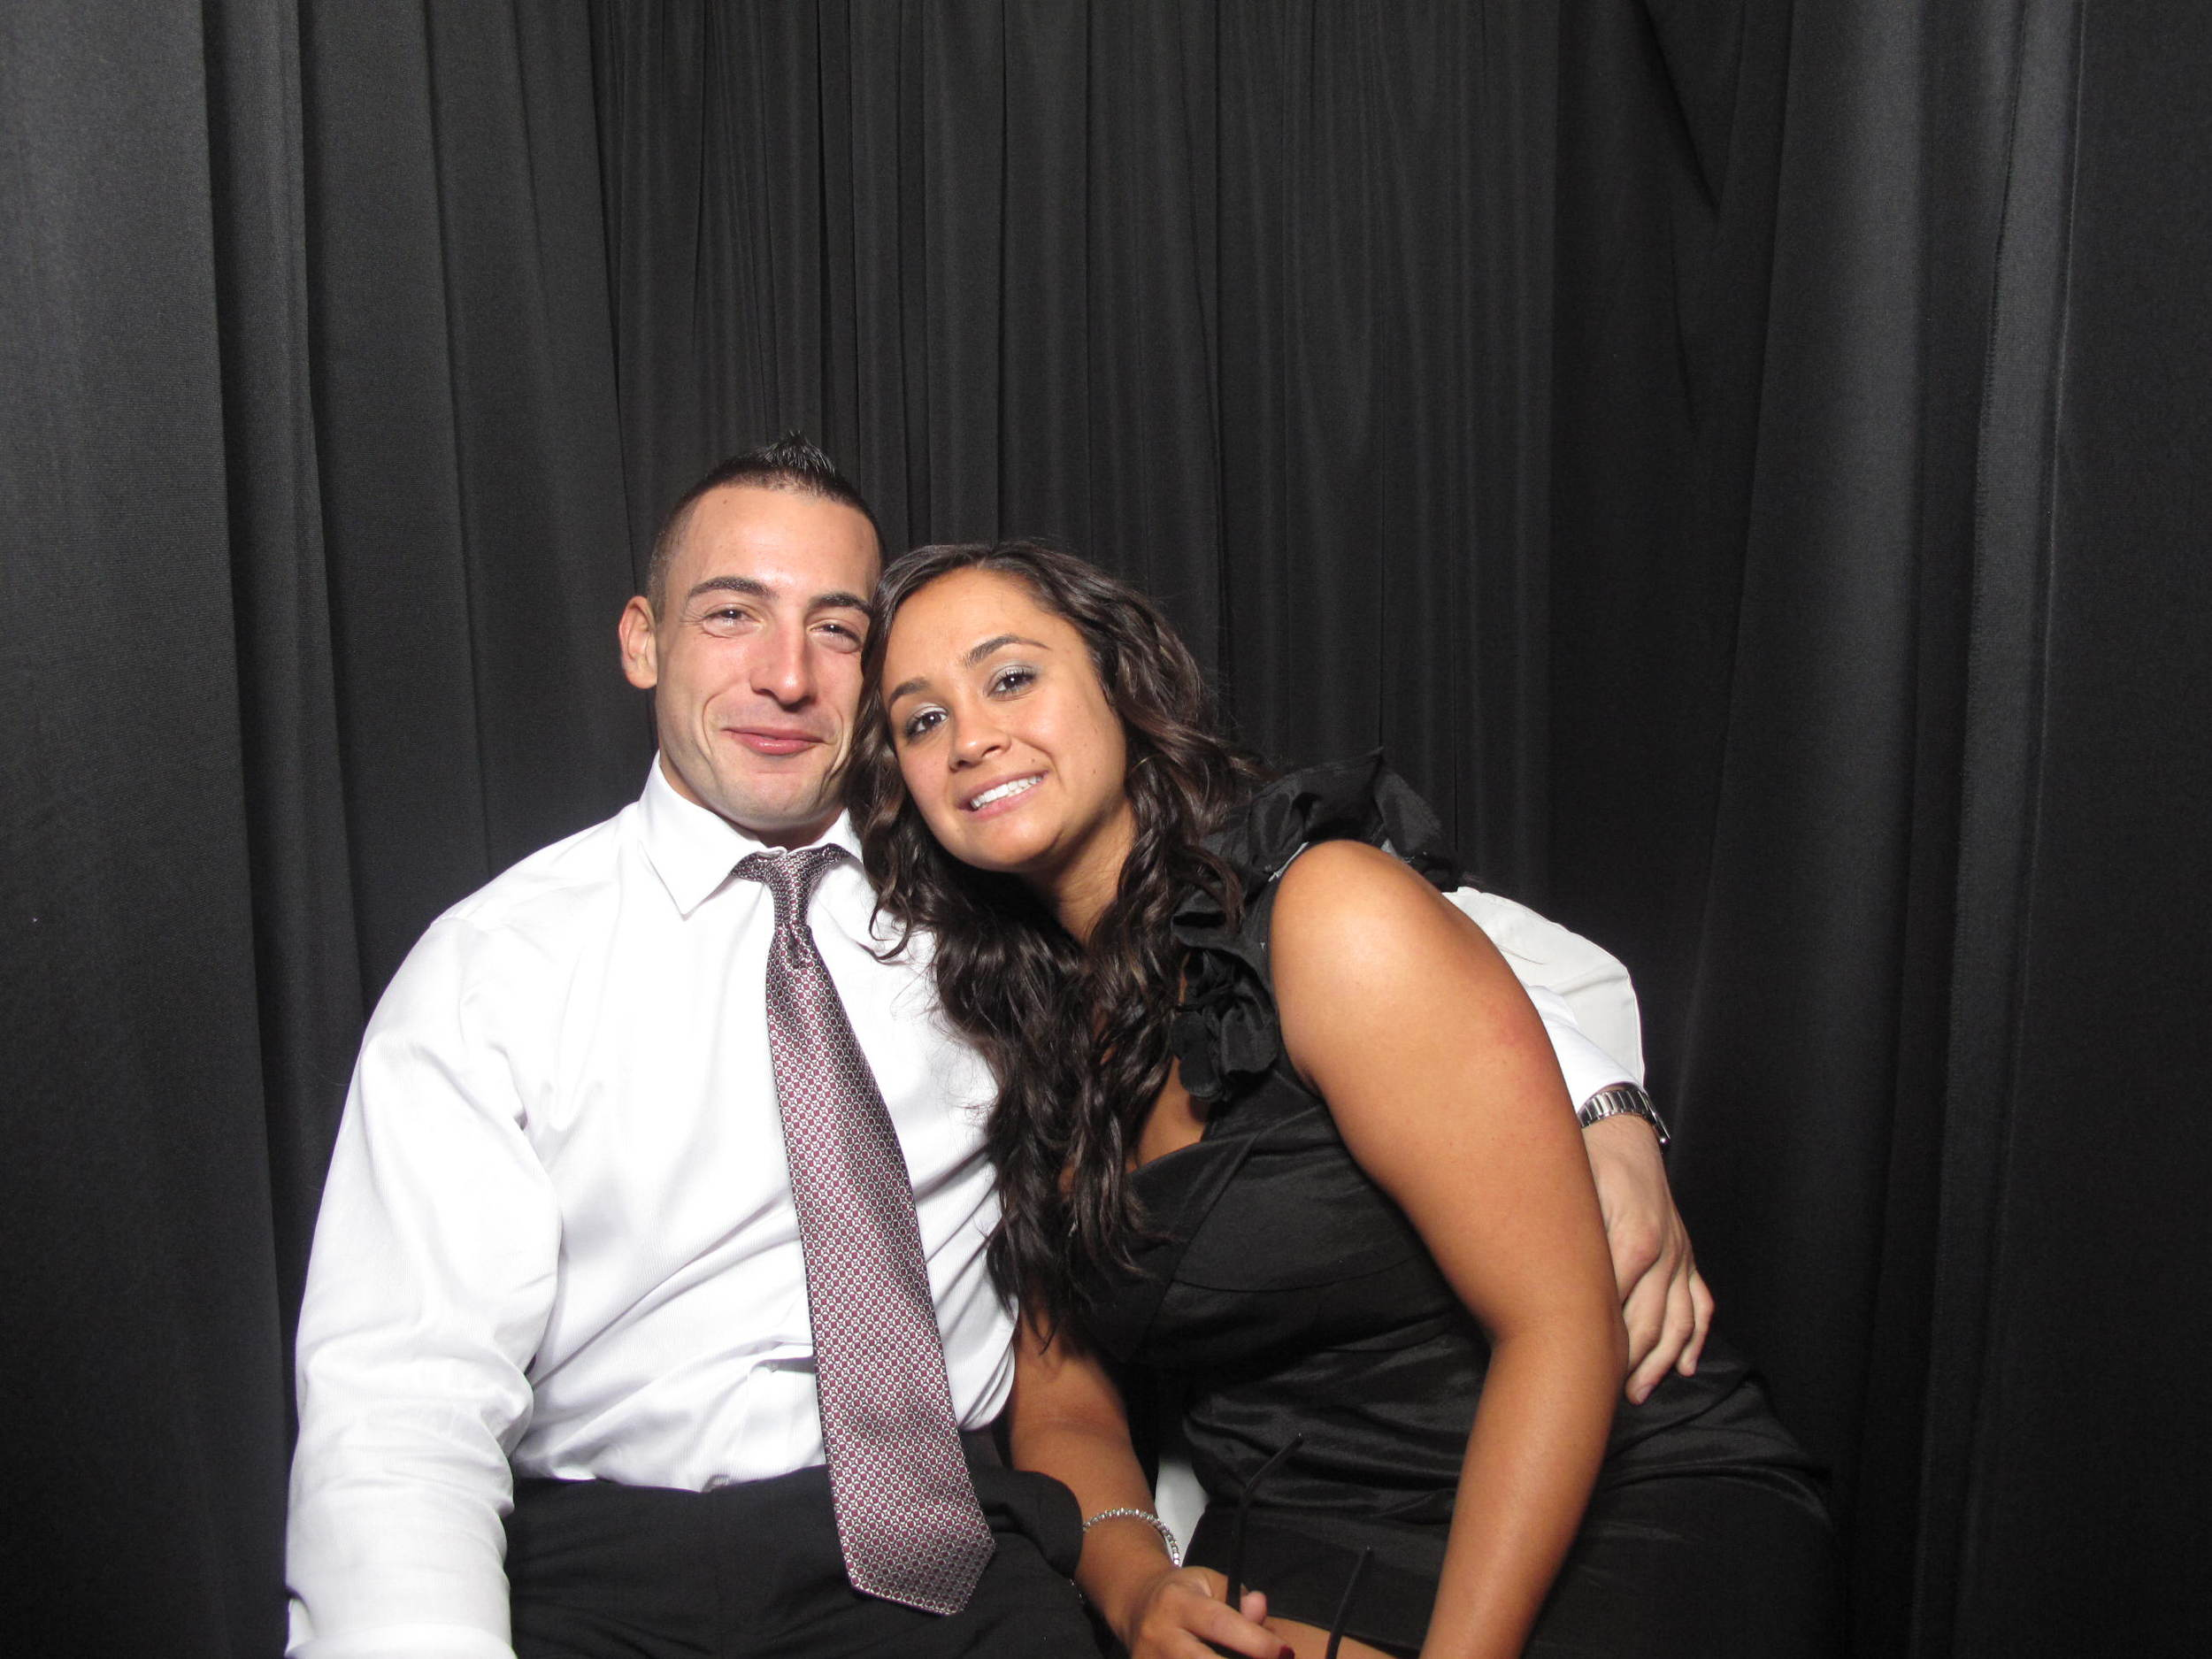 Snapshot Photobooths at The Westwood in Garwood